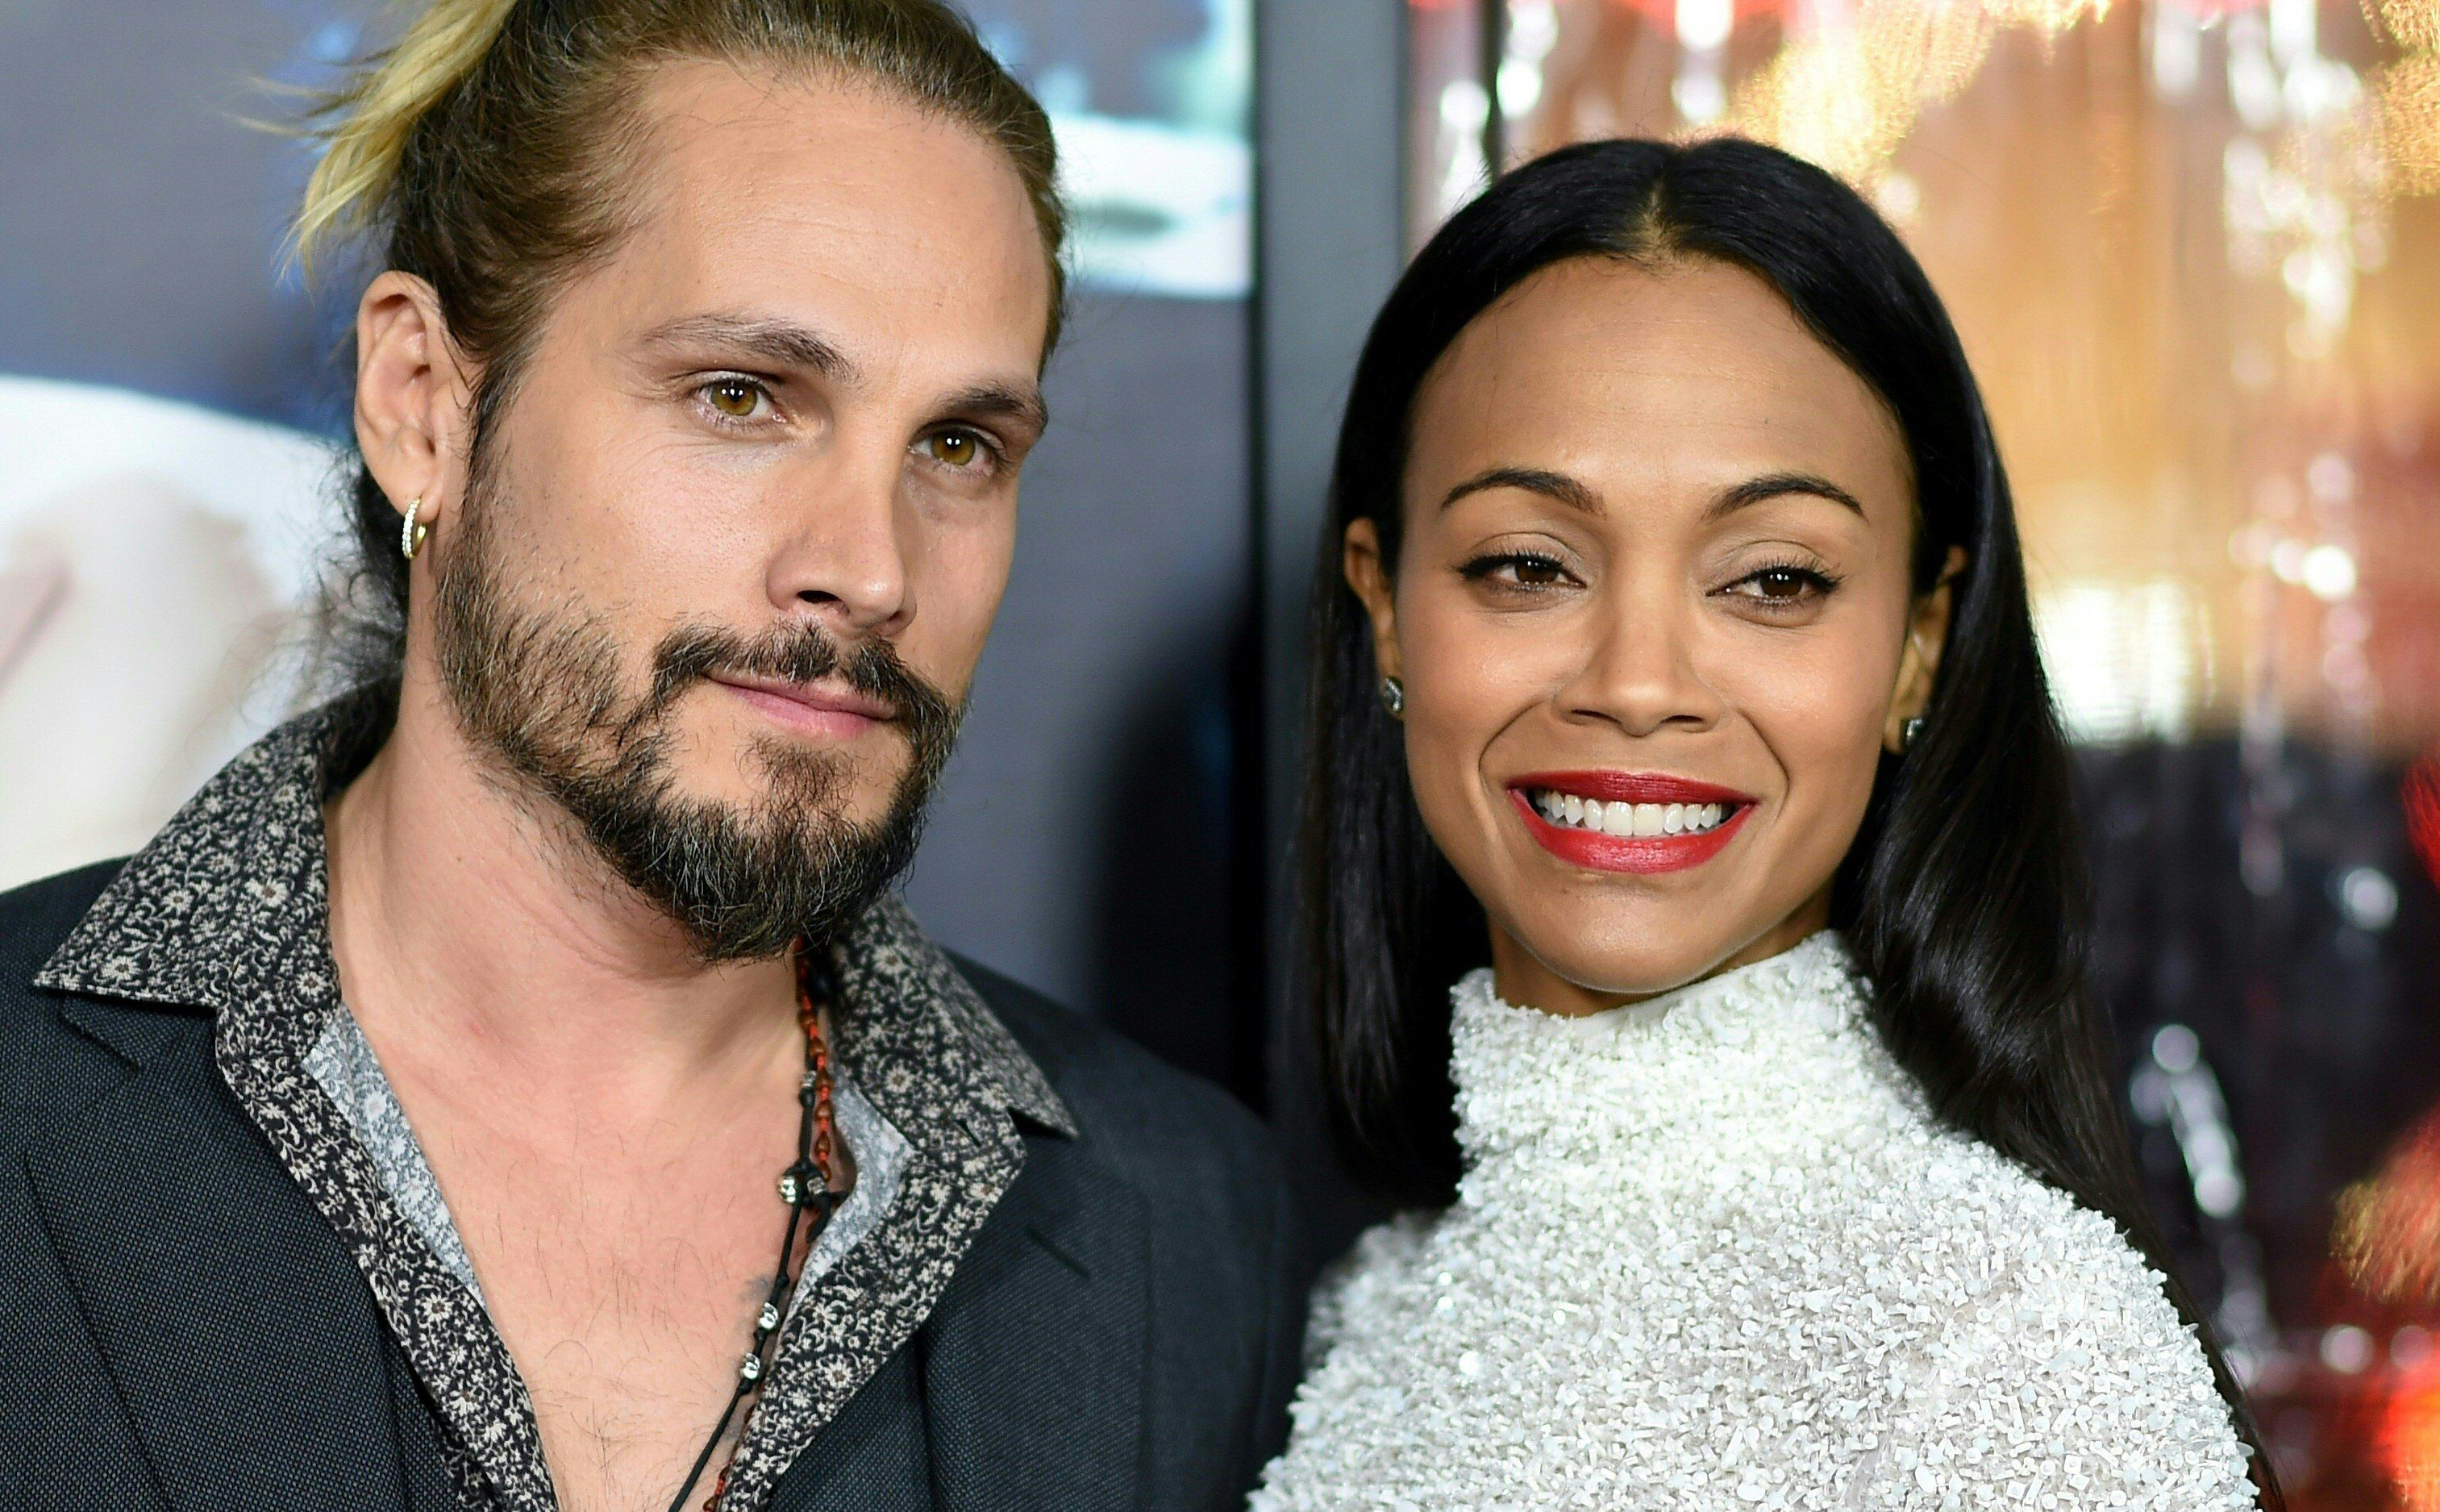 Artist Marco Perego and actress Zoe Saldana arrive for the  for the world premiere of Warner Bros. 'Live By Night,' January 9, 2017 at the TCL Chinese Theater in Hollywood, California. / AFP / Robyn Beck        (Photo credit should read ROBYN BECK/AFP/Getty Images)